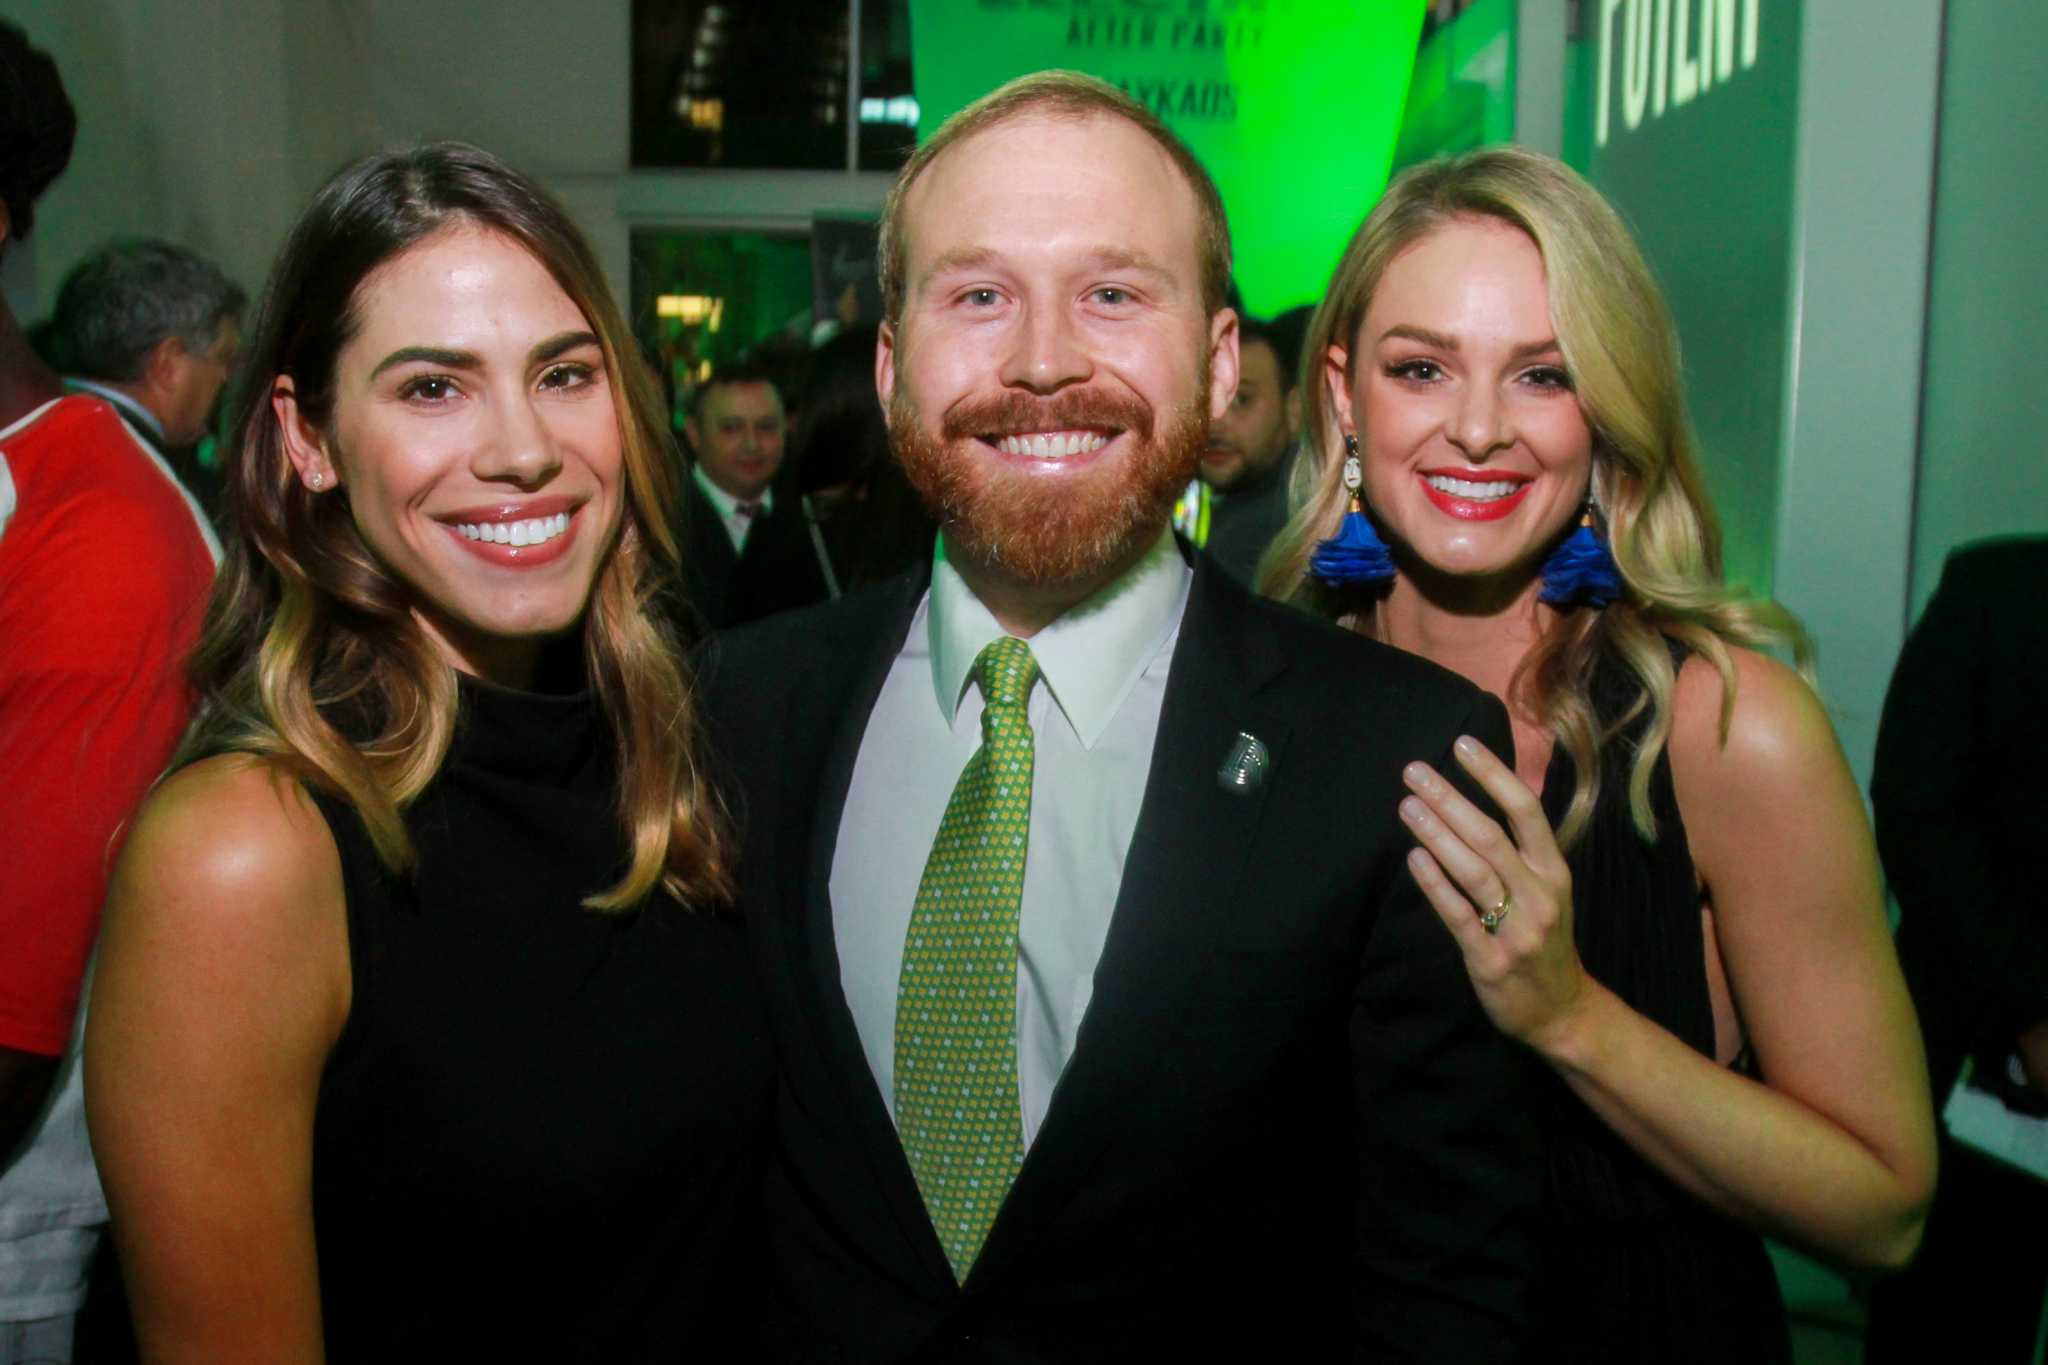 Big Brothers, Big Sisters goes green: Gala and 'electric after-party' raise $350,000 for mentoring